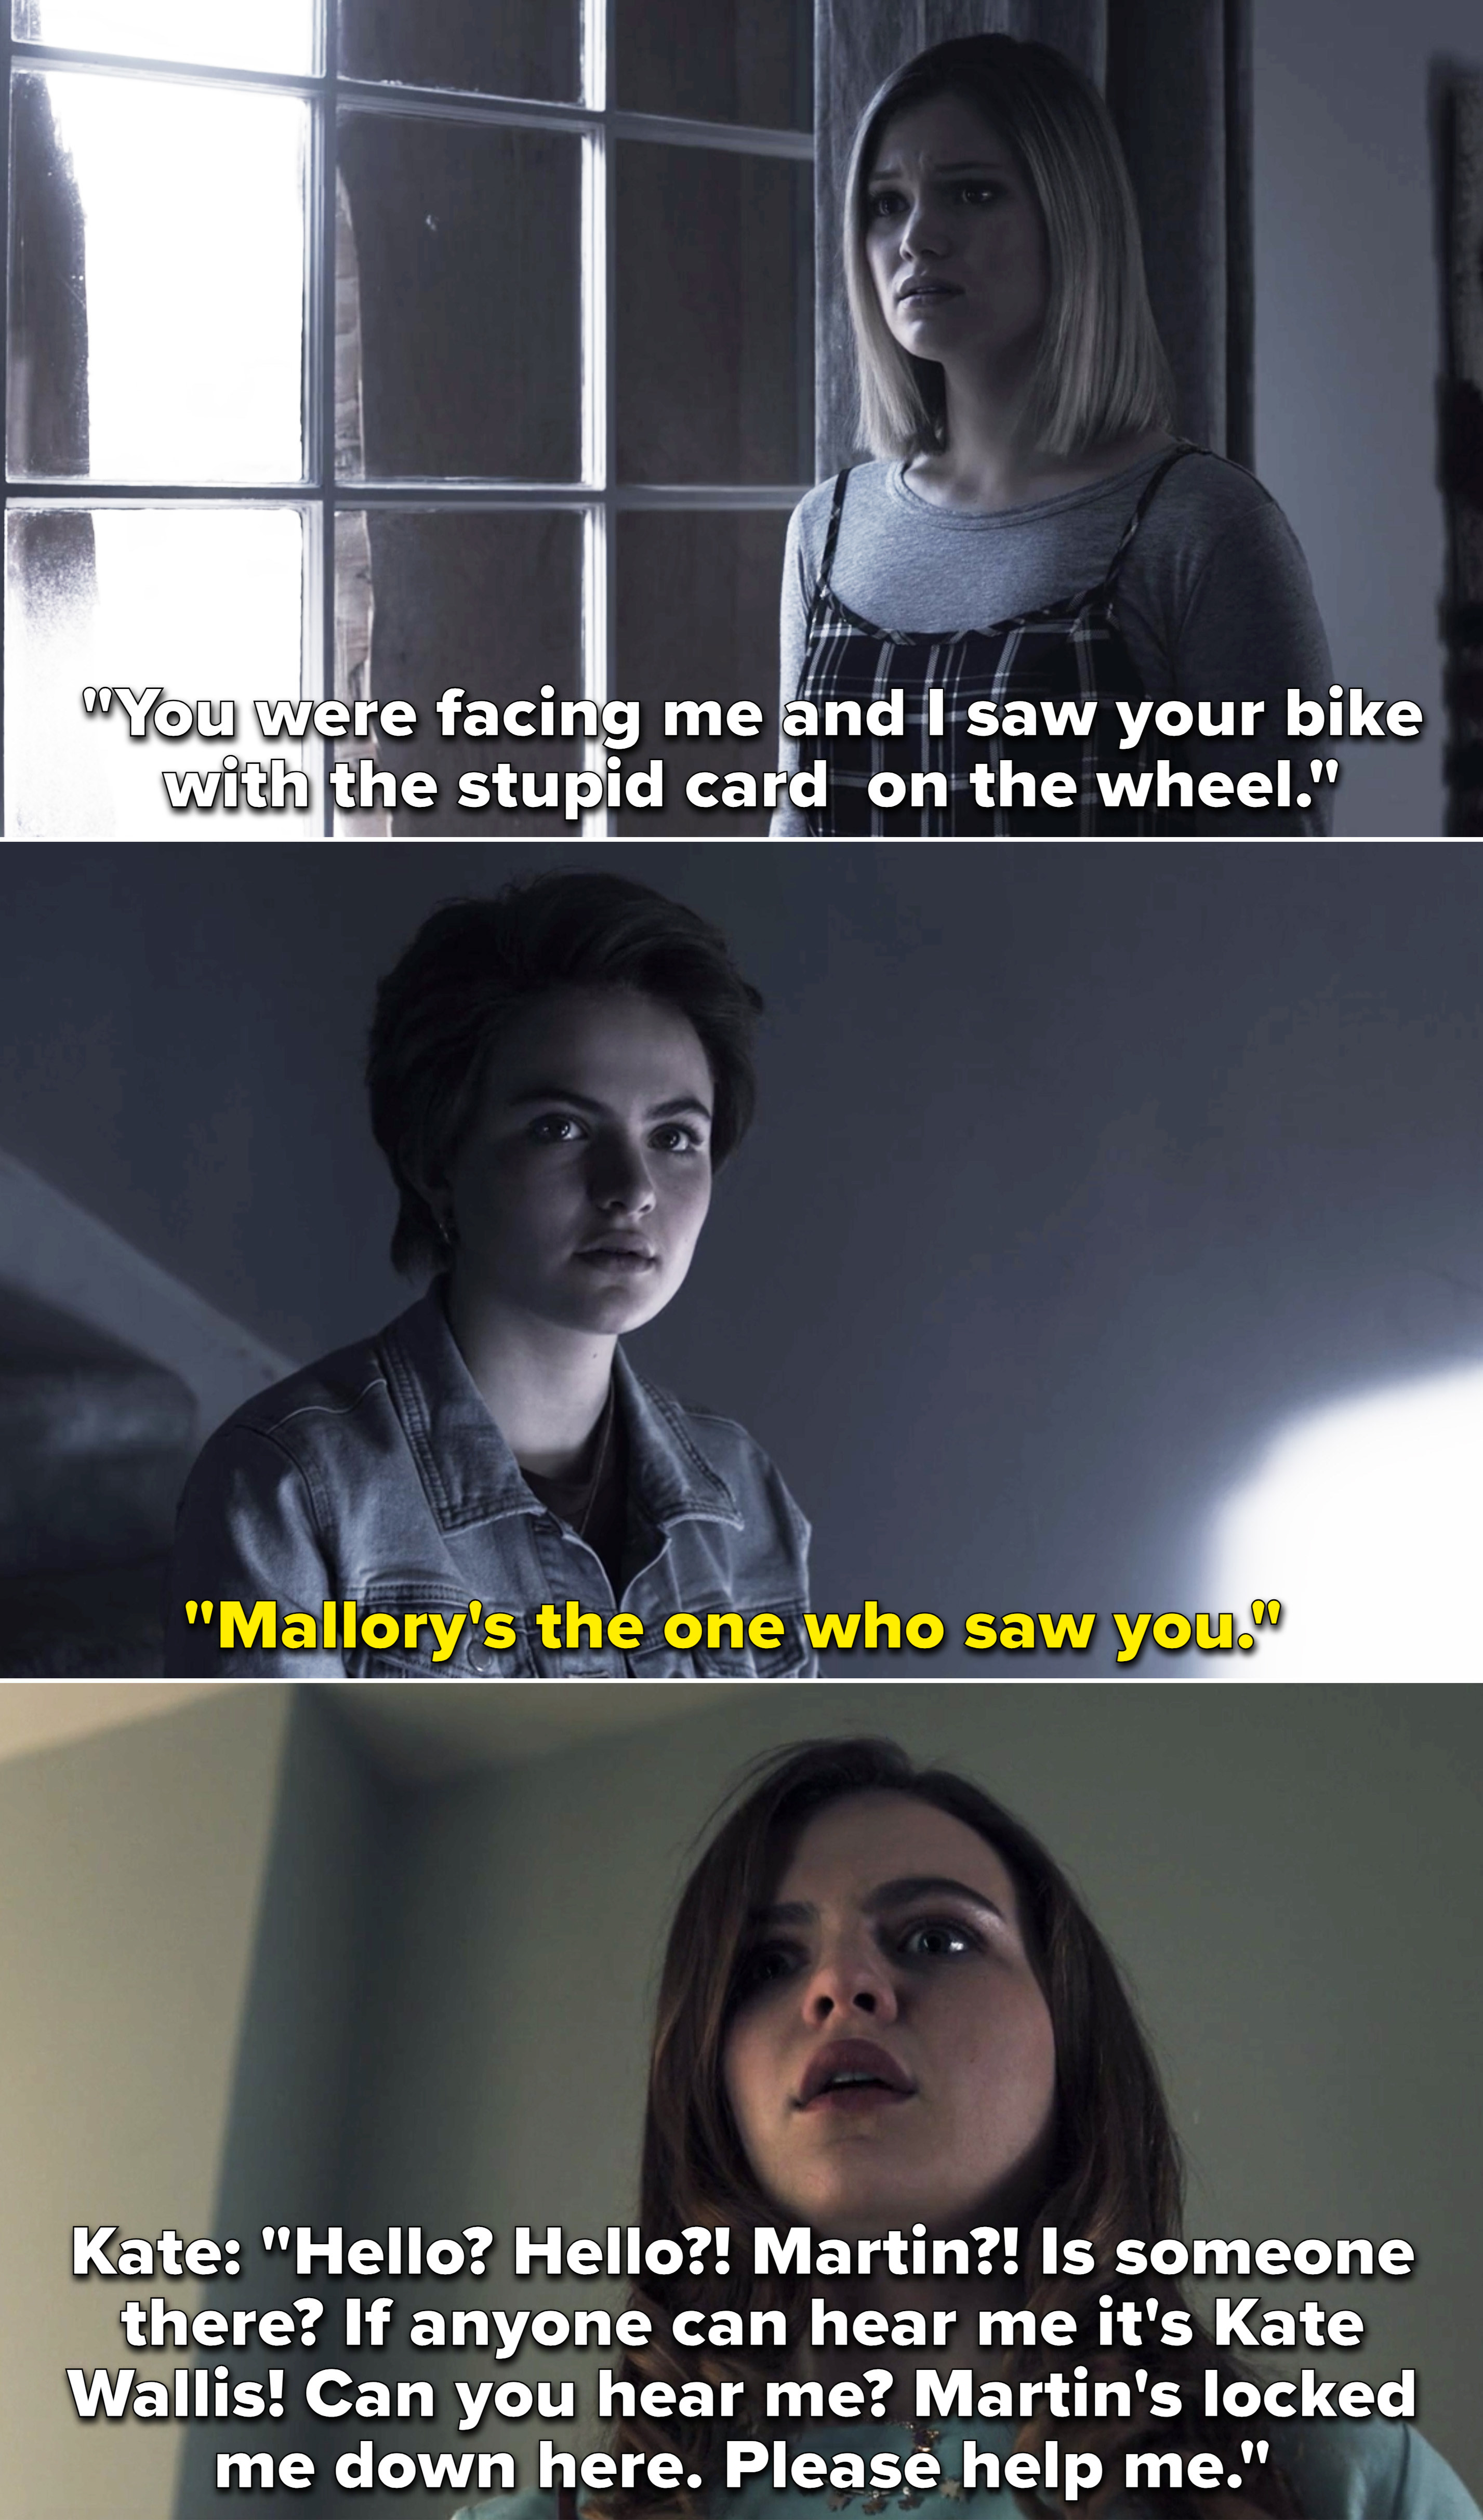 Jeanette telling Kate, Mallory had the bike with the card on the wheel. Then, Jeanette in 1994 hearing Kate pleading in the basement